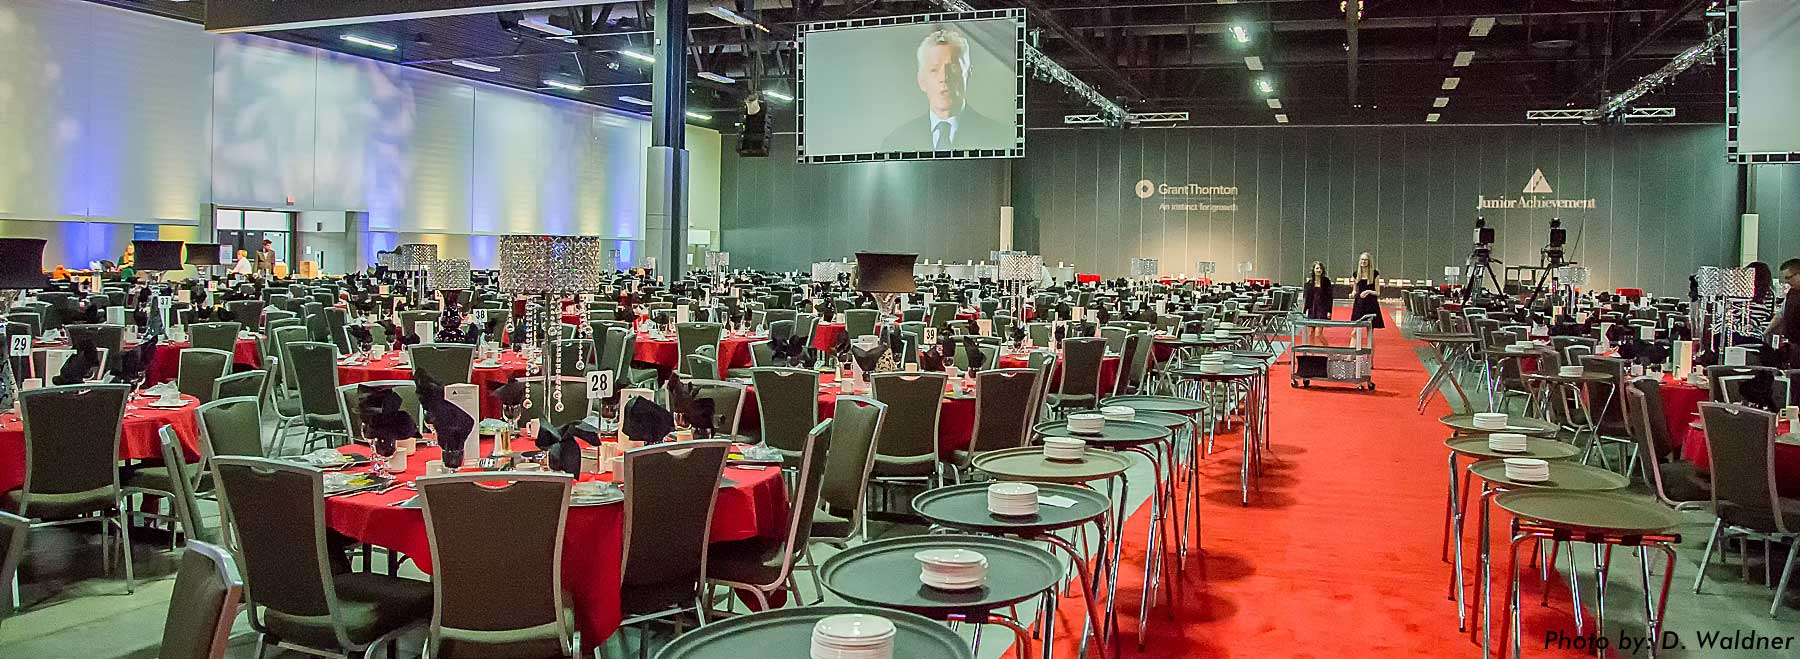 Junior Achievement Awards celebrating 50 years at the Edmonton Northlands Expo Centre Audio, Video, Lighting Production, support staff and set centre piece by Allstar Show Industries